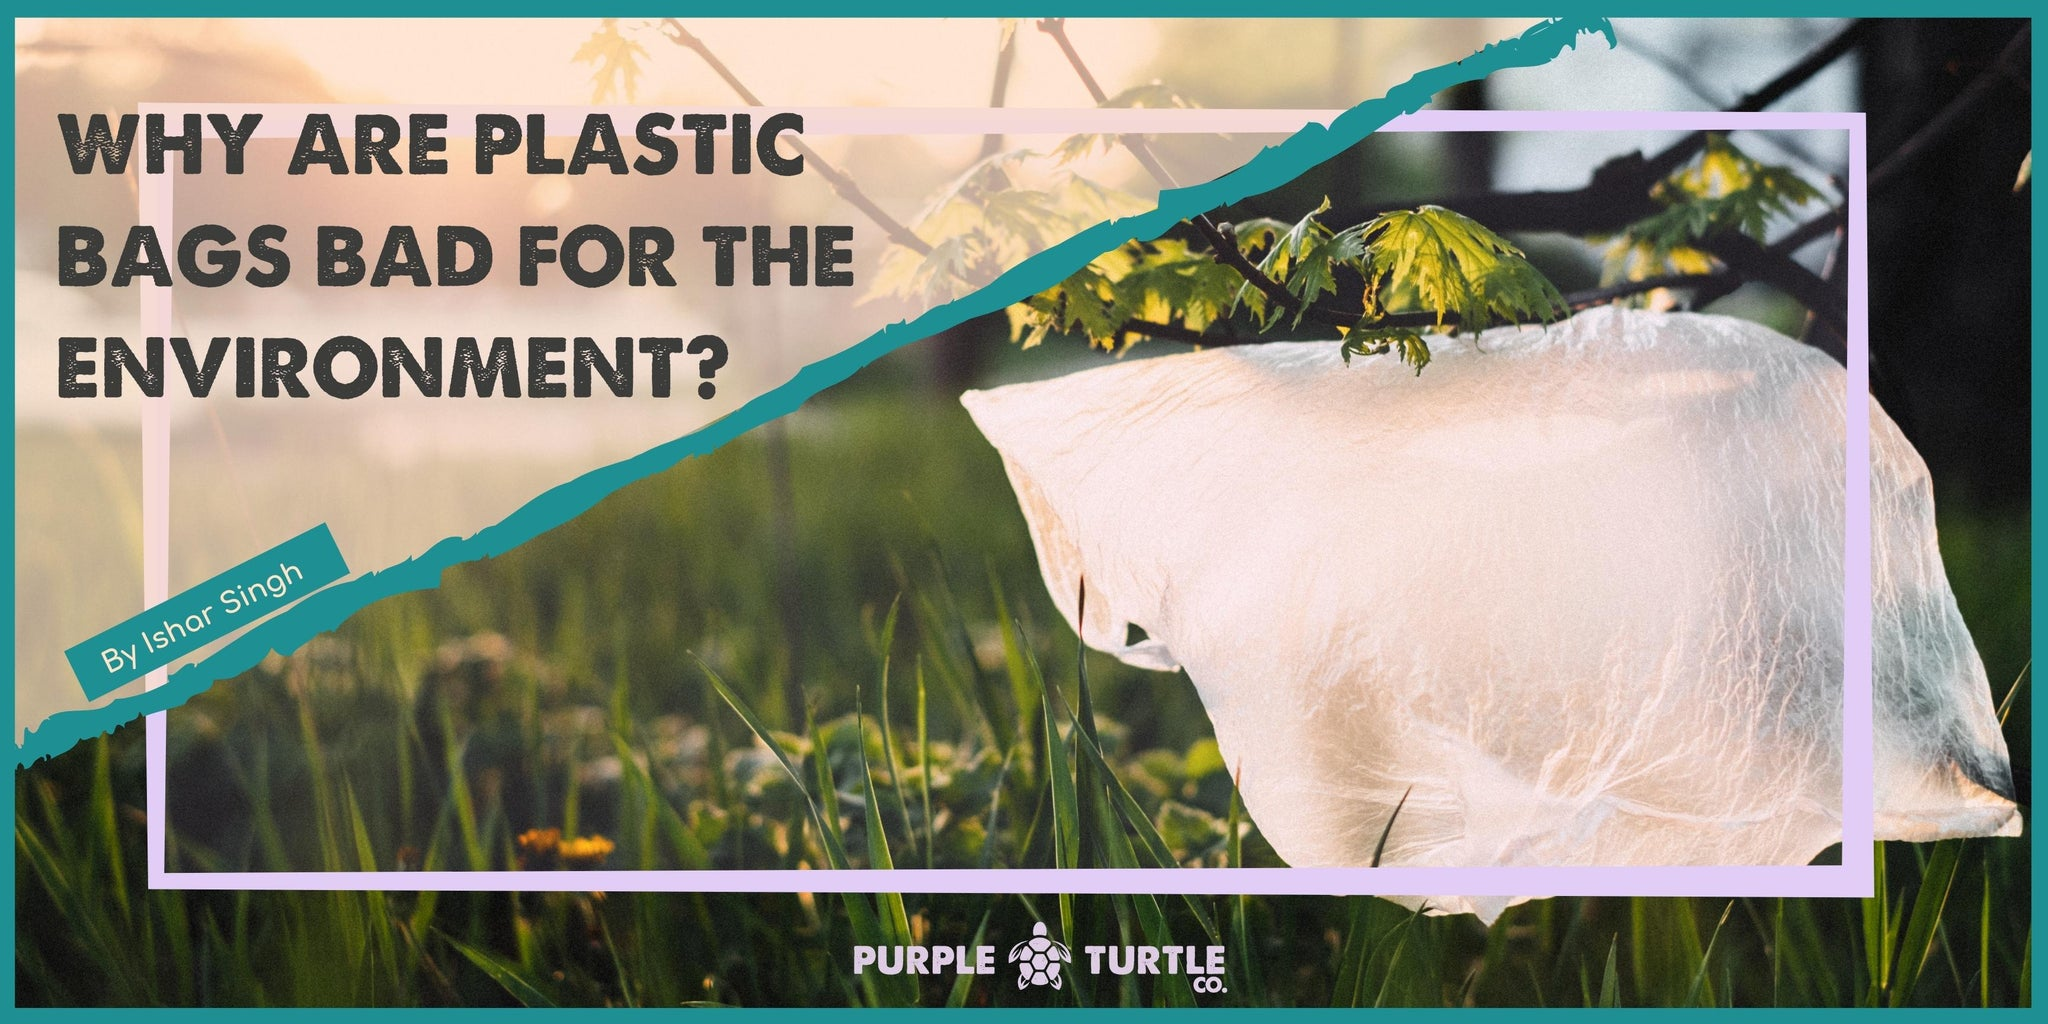 Why are plastic bags bad for the environment?